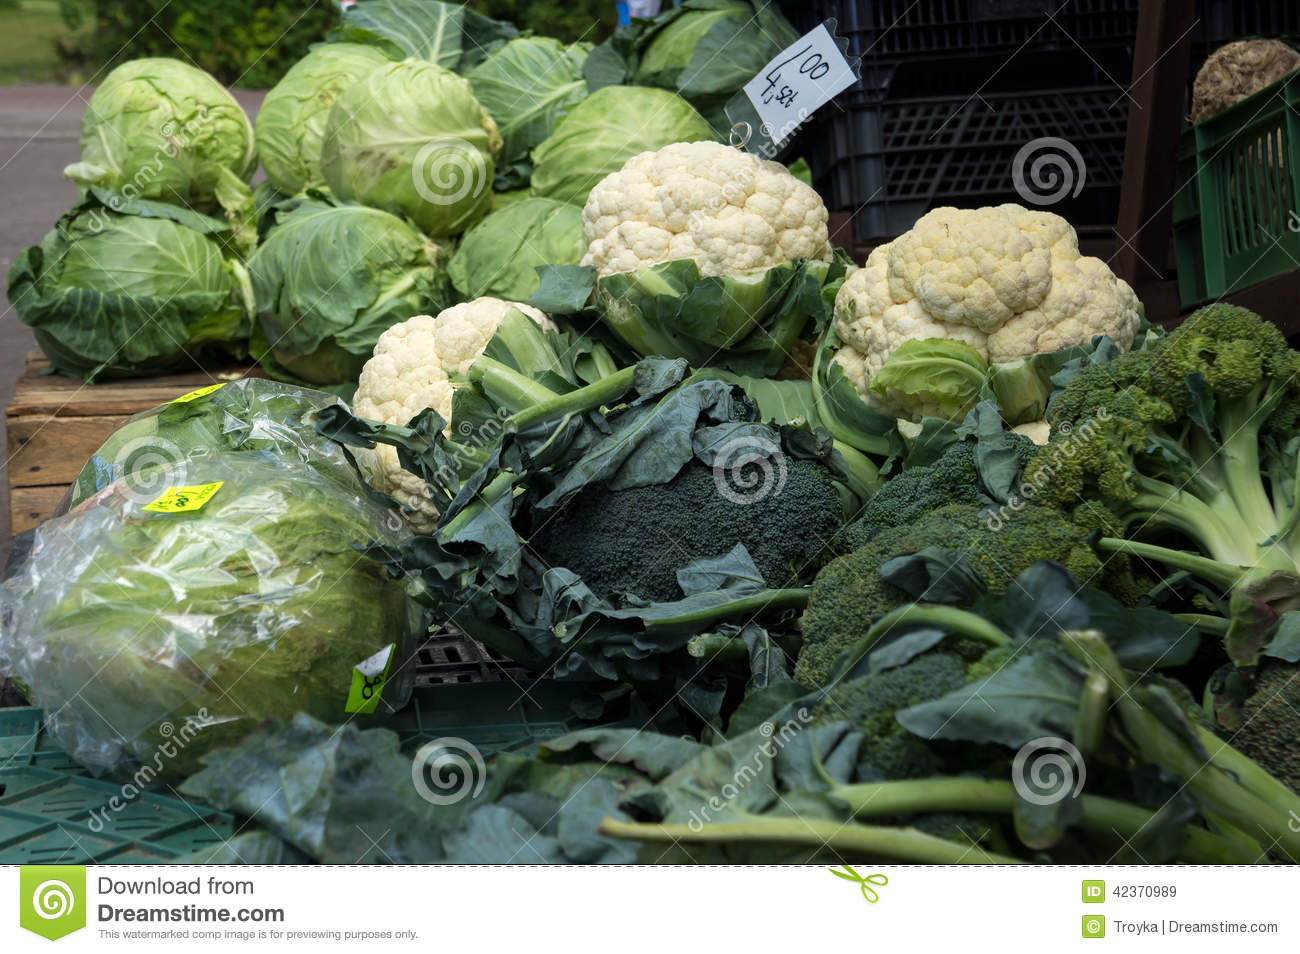 Cabbages, cauliflowers and broccoli at market.